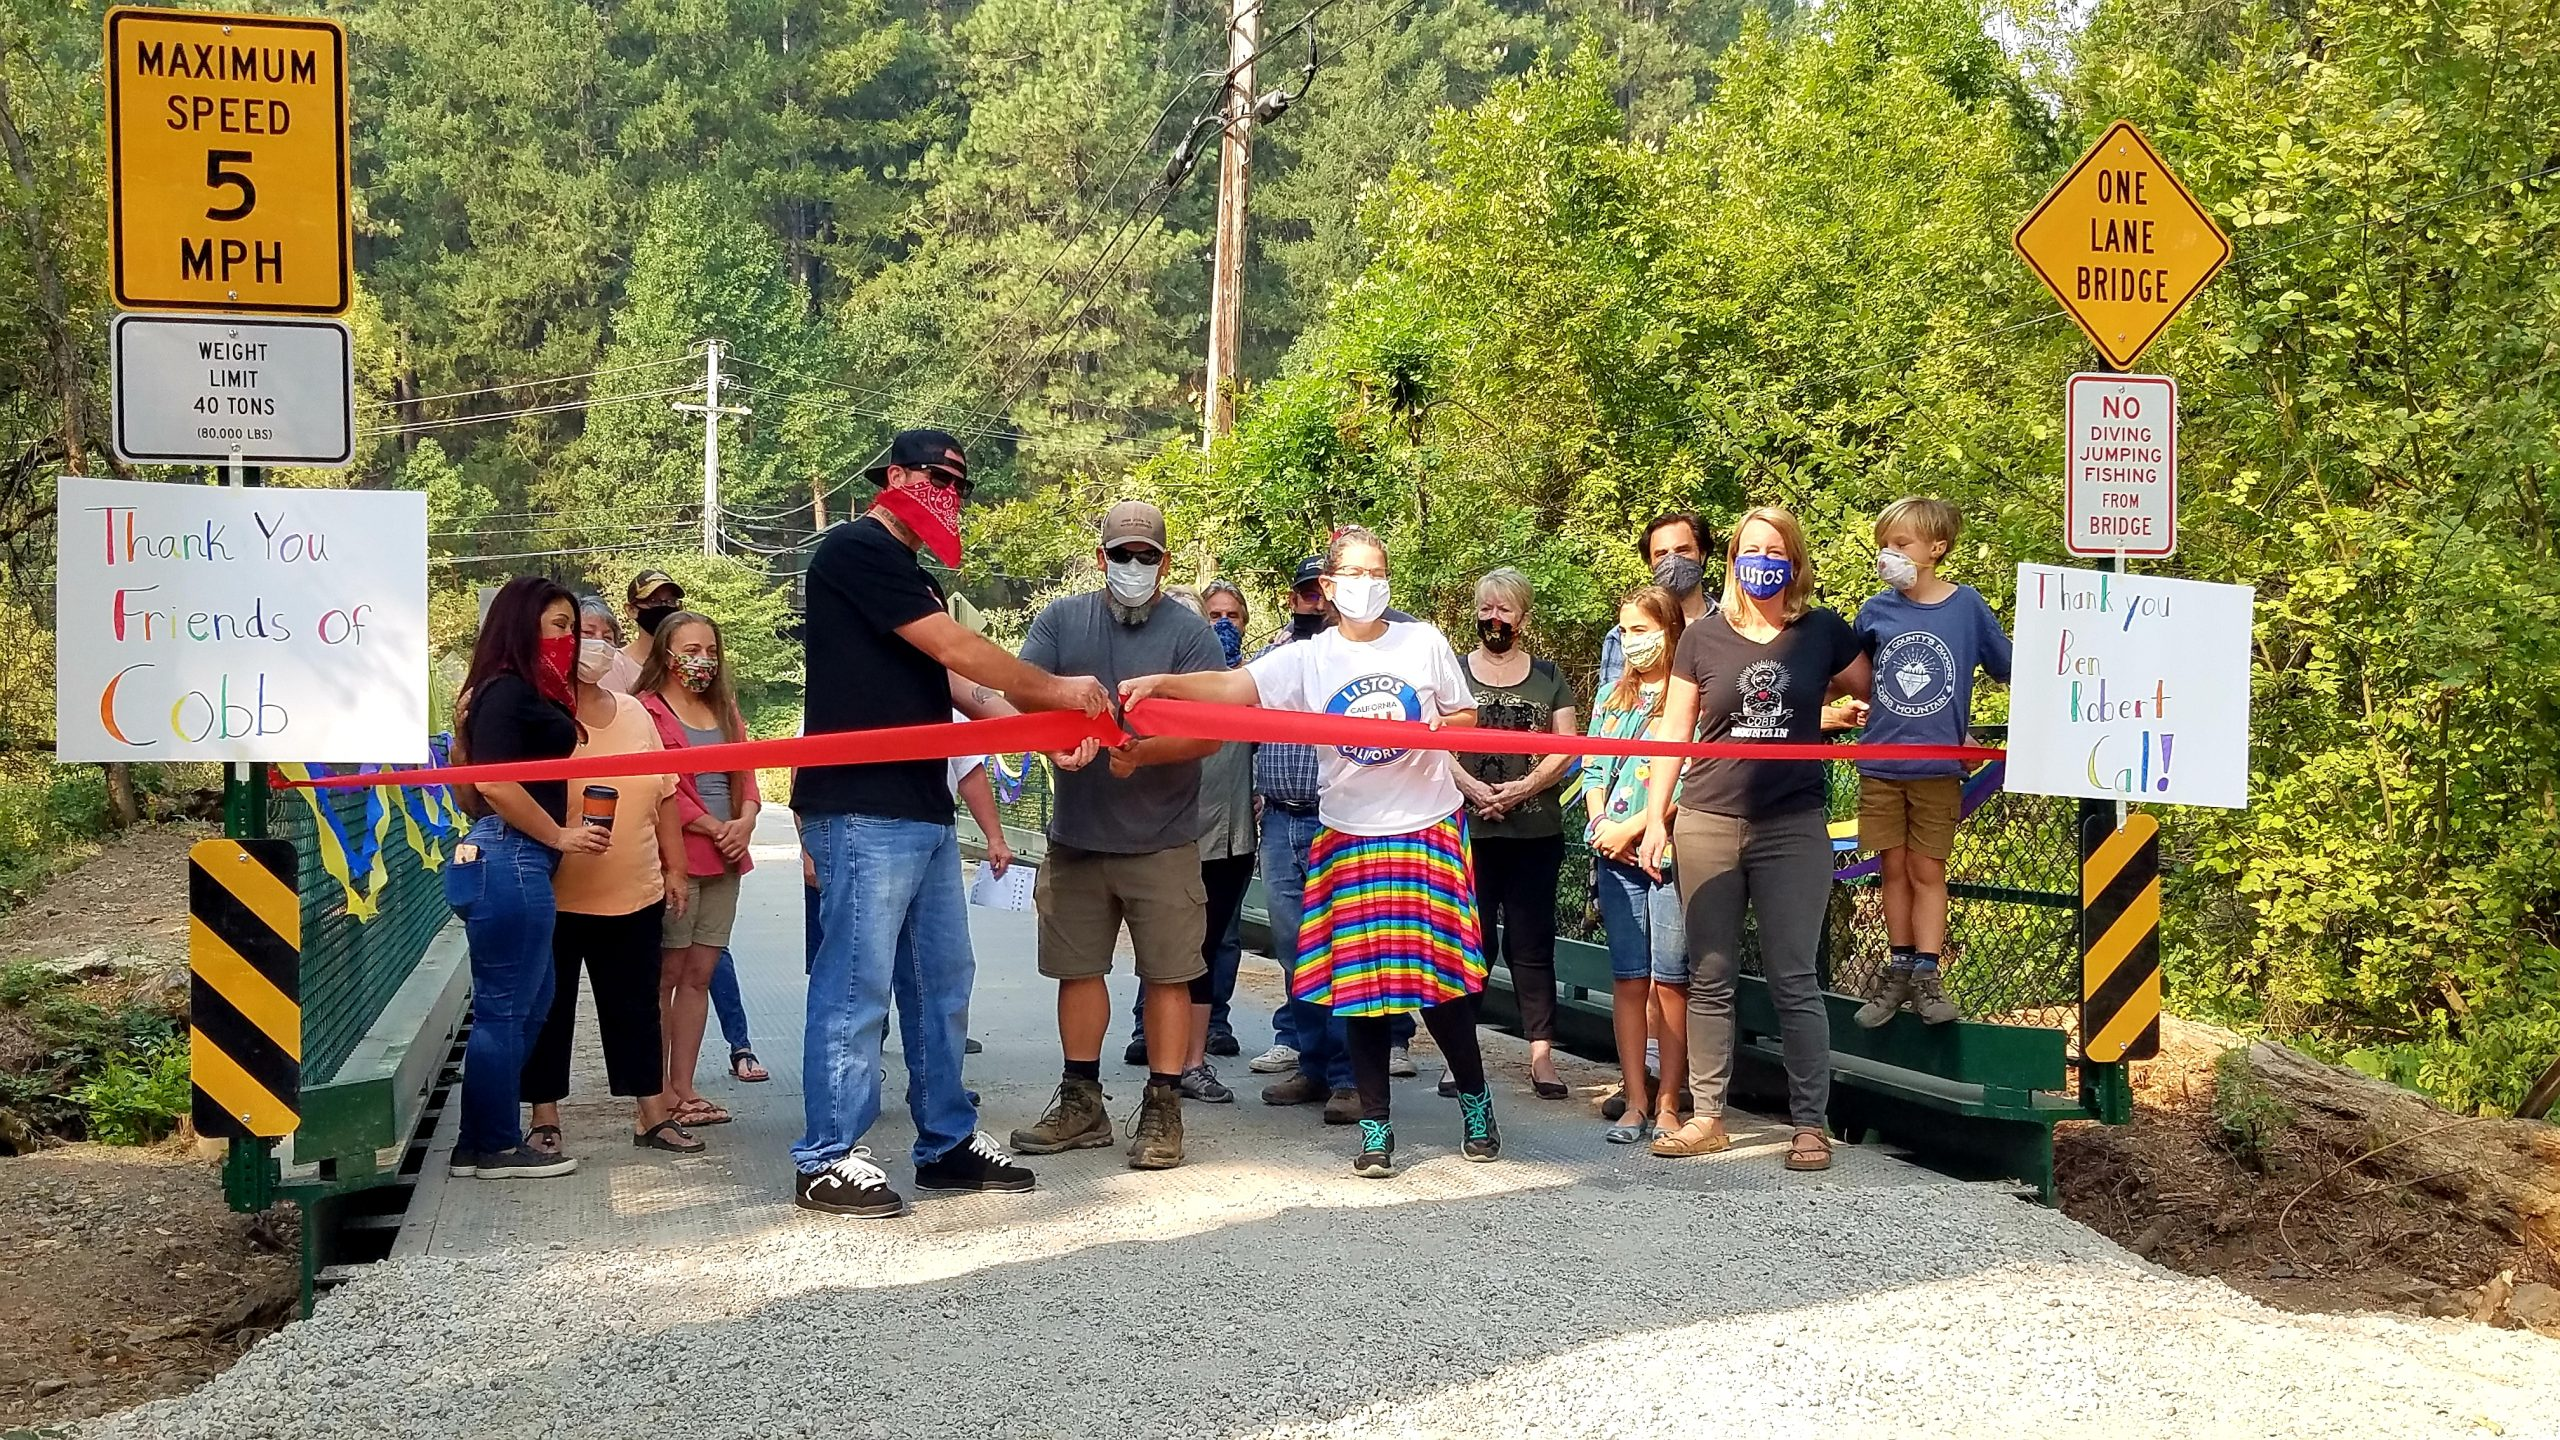 Cobb Area Council, Cobb Water, and Community members cut the ribbon.